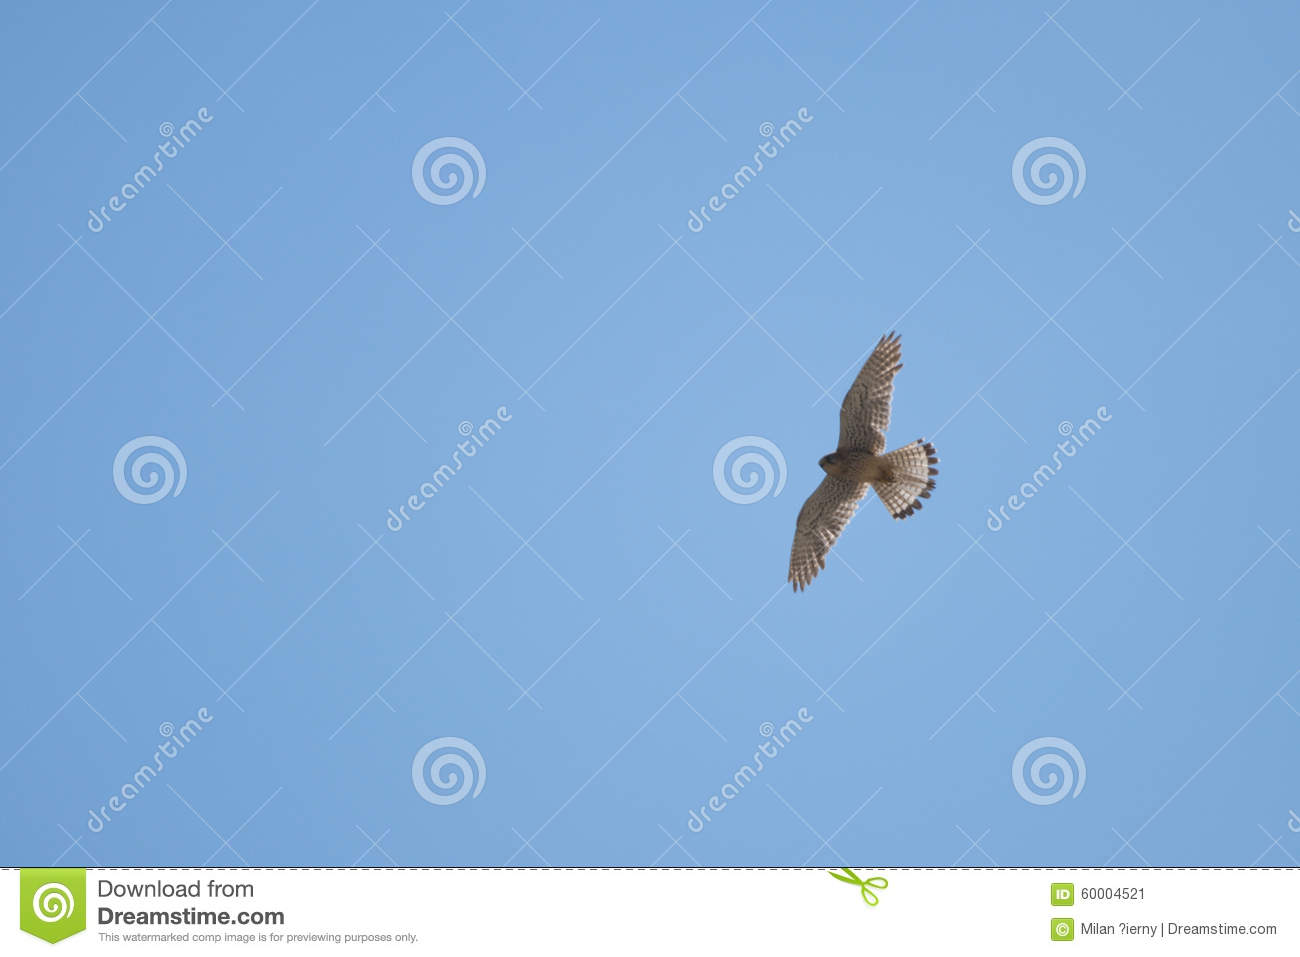 Falcon Stock Photo - Image: 60004521